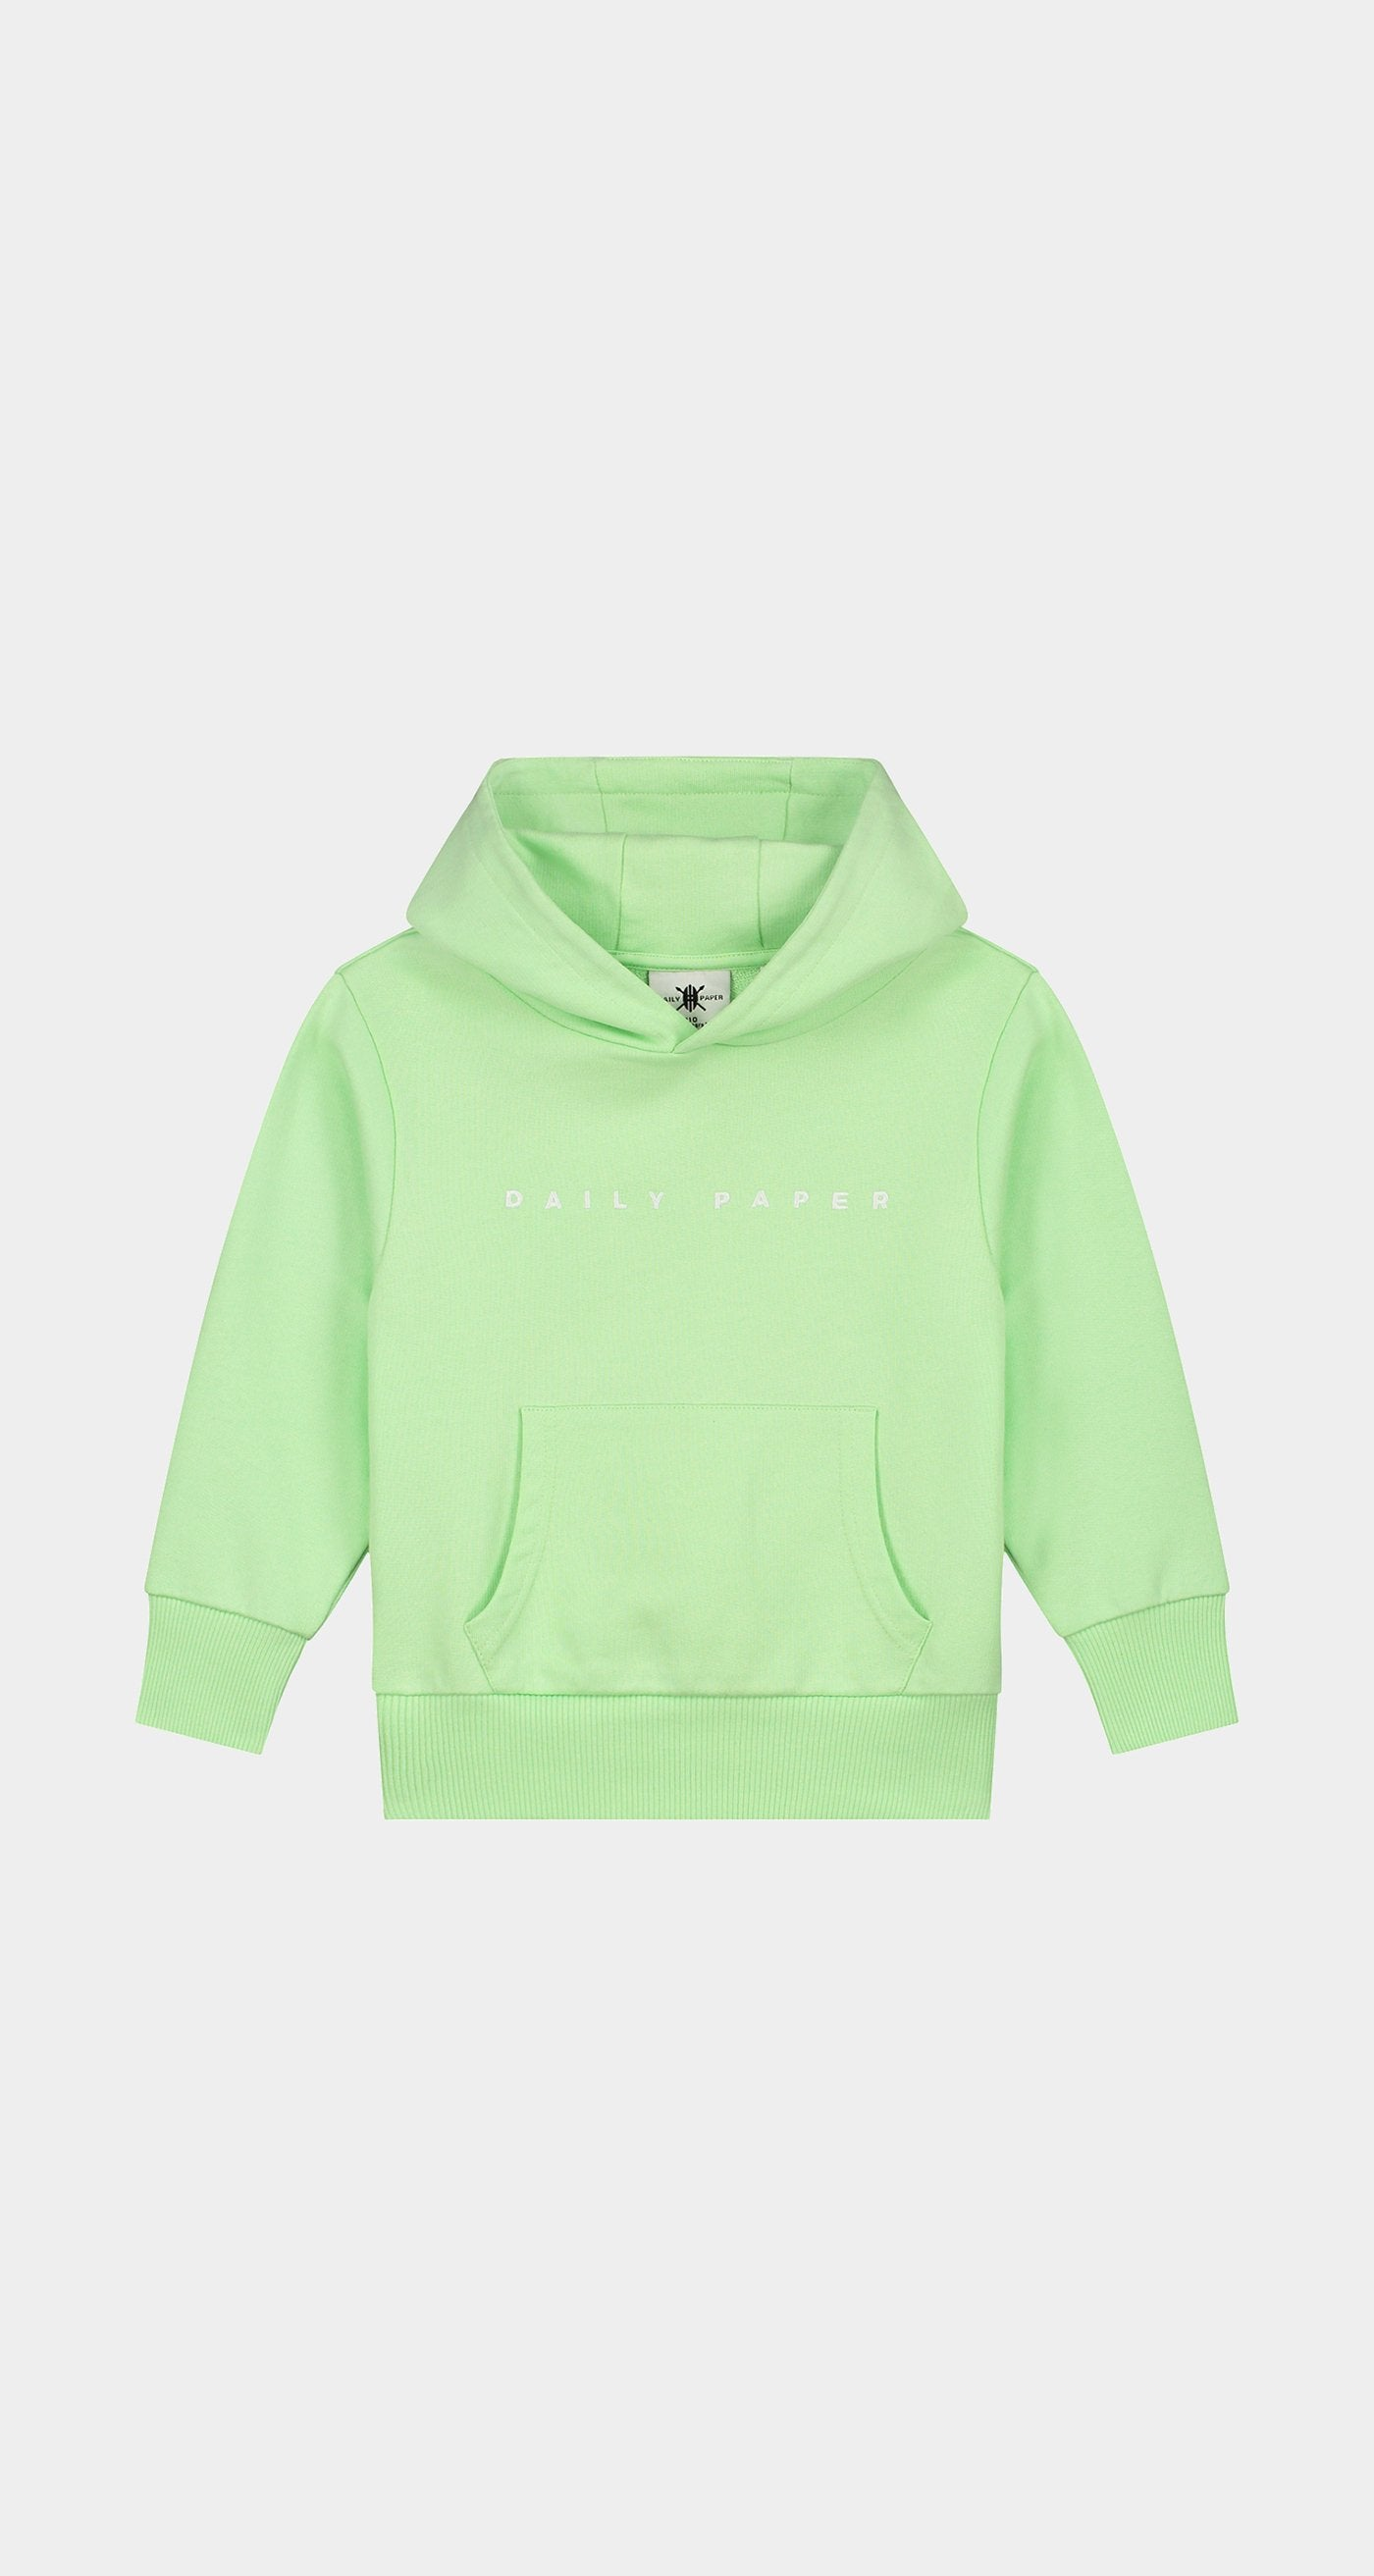 Daily Paper - Patina Green Kids Alias Hoody Front